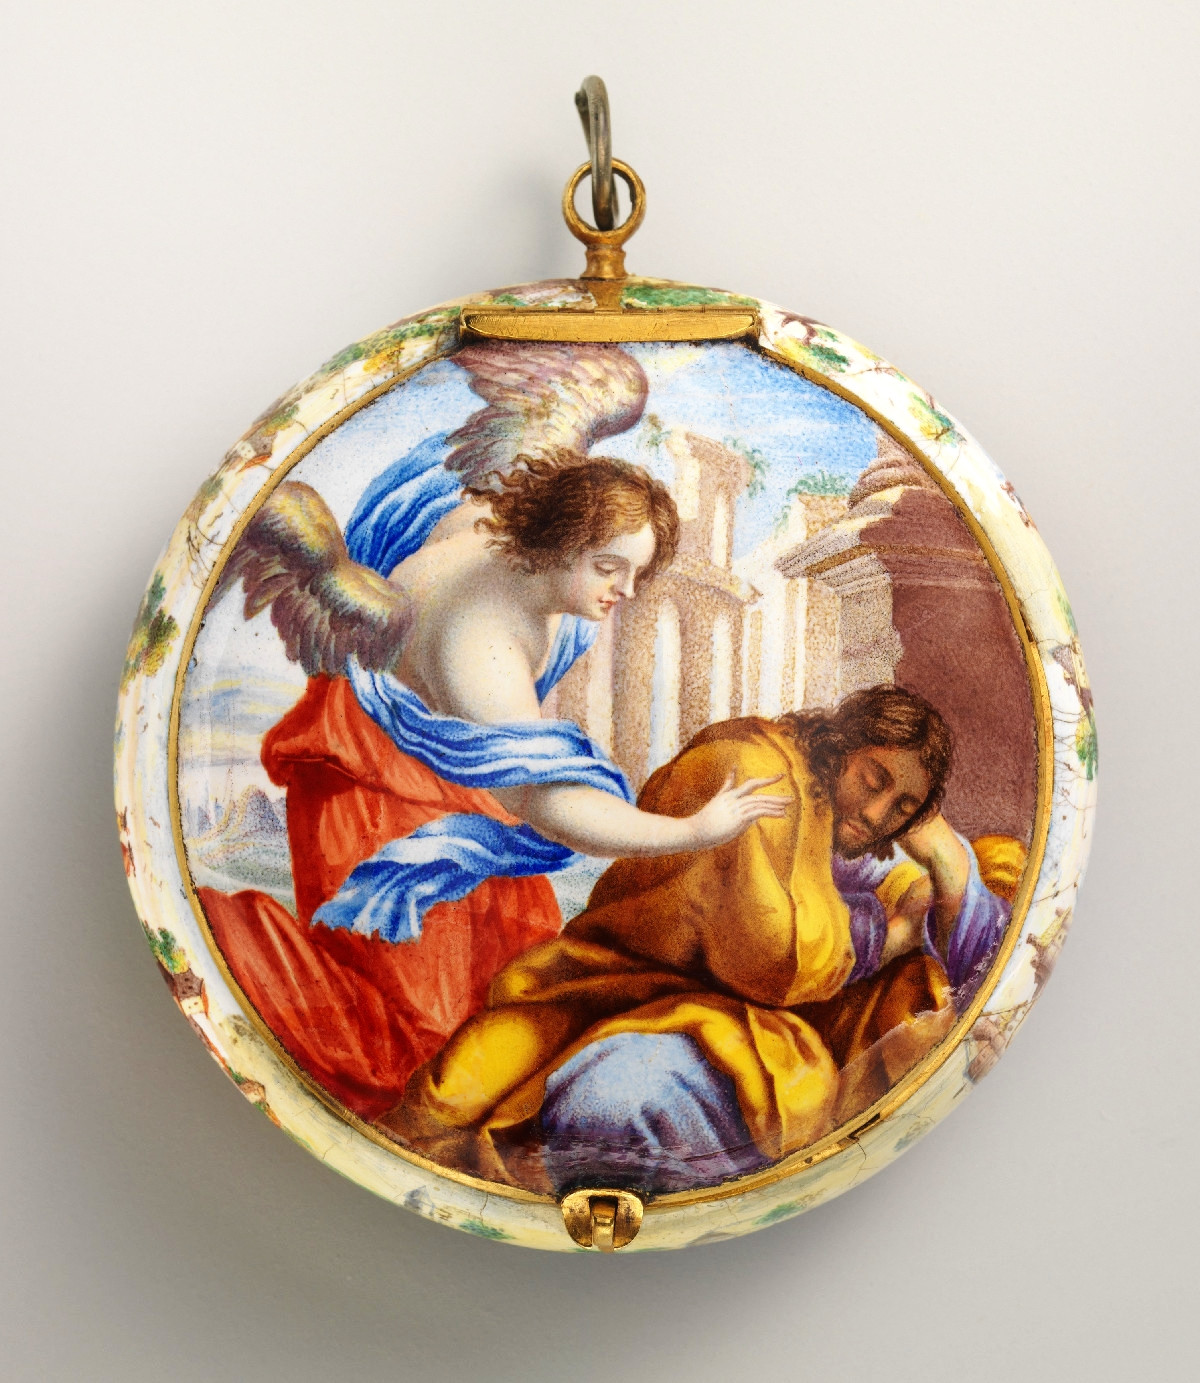 1645. Case and dial painted enamel on gold with brass hand; Movement gilded brass and partly blued steel. metmuseumFrench, probably Paris